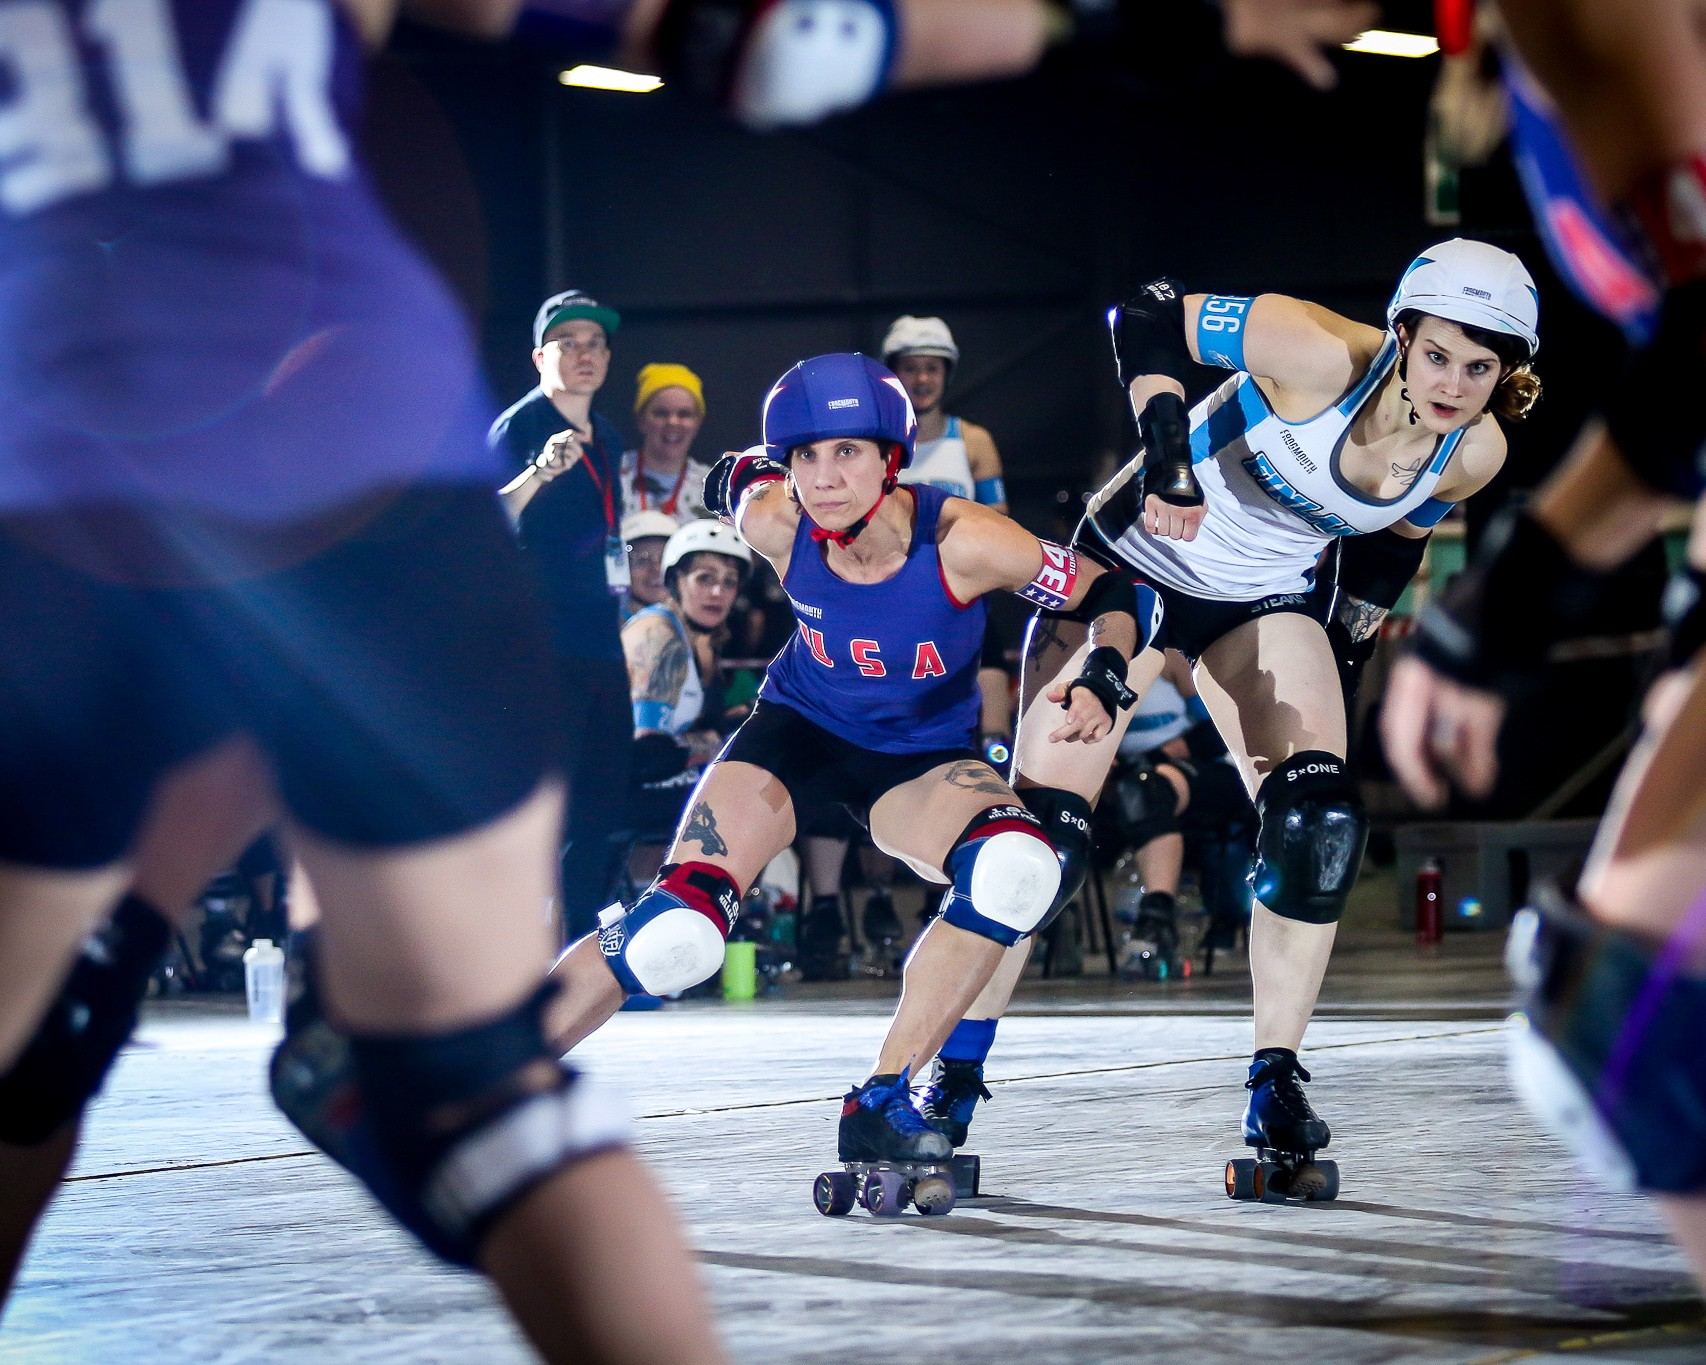 2018 Roller Derby World Cup Scores - Frogmouth - Medium